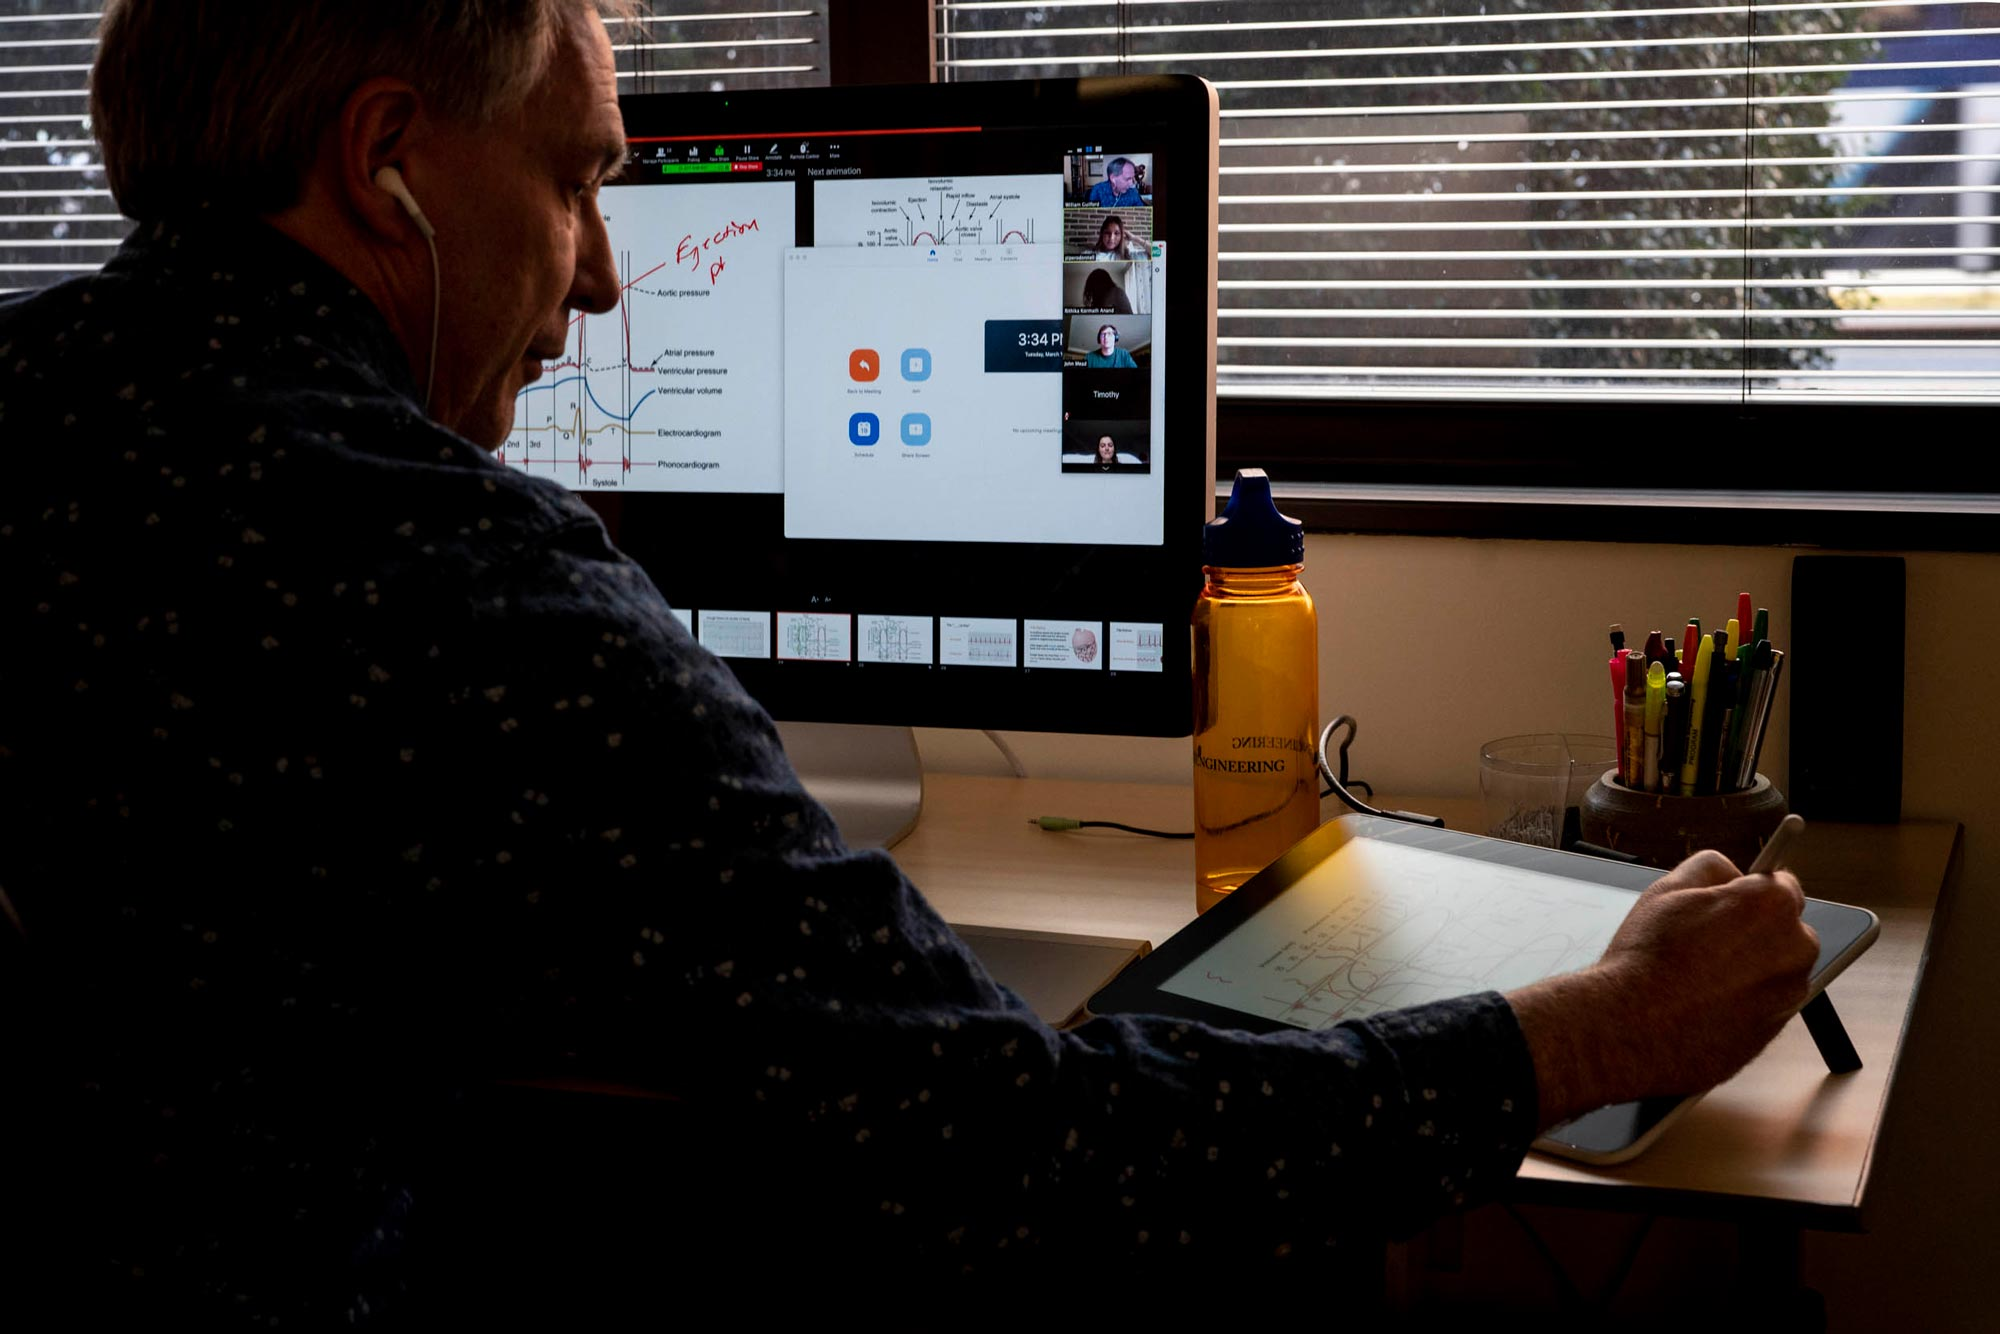 Guilford, assistant dean for undergraduate education at the School of Engineering, helped fellow faculty members prepare to shift classes online in a matter of days. Most online instruction began Thursday and continues through the end of the semester.